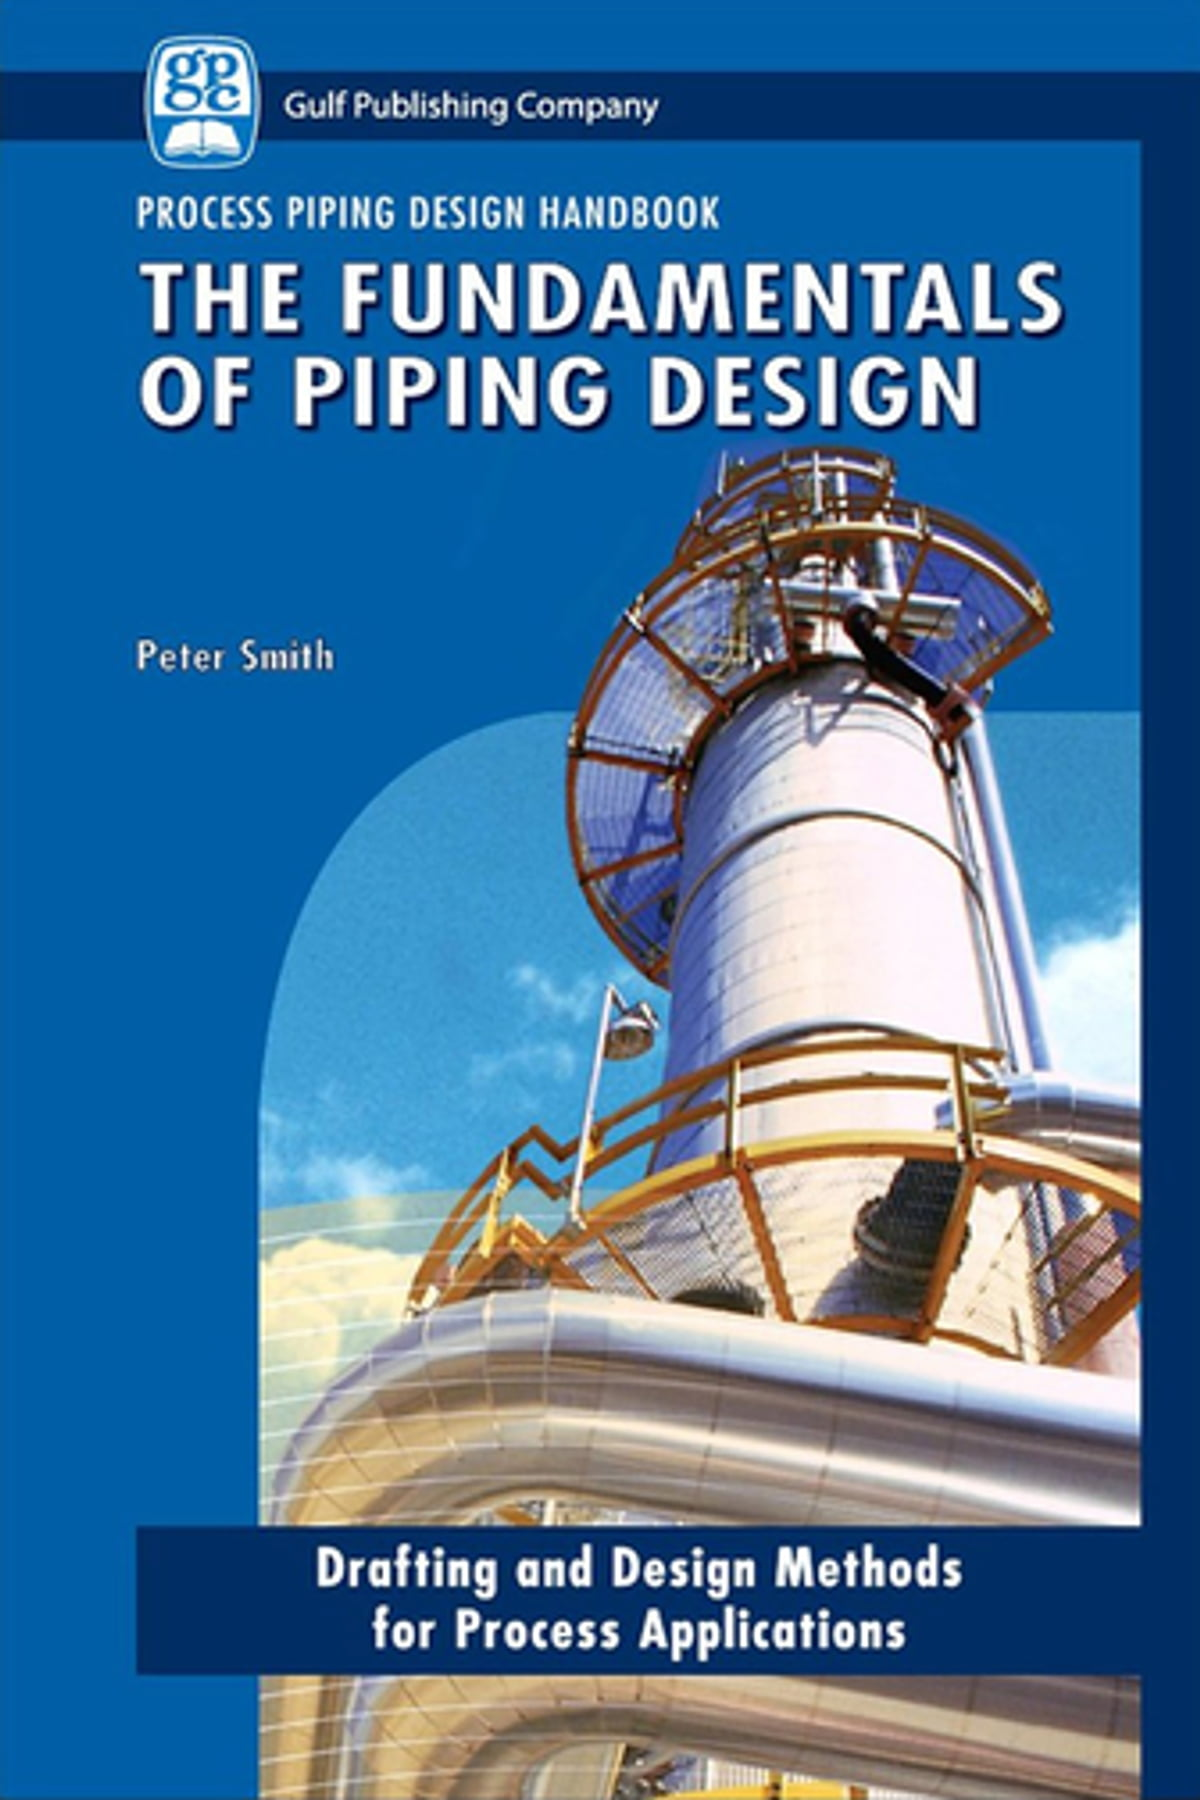 The Fundamentals Of Piping Design Ebook By Peter Smith Layout Best Practices 9780127999791 Rakuten Kobo